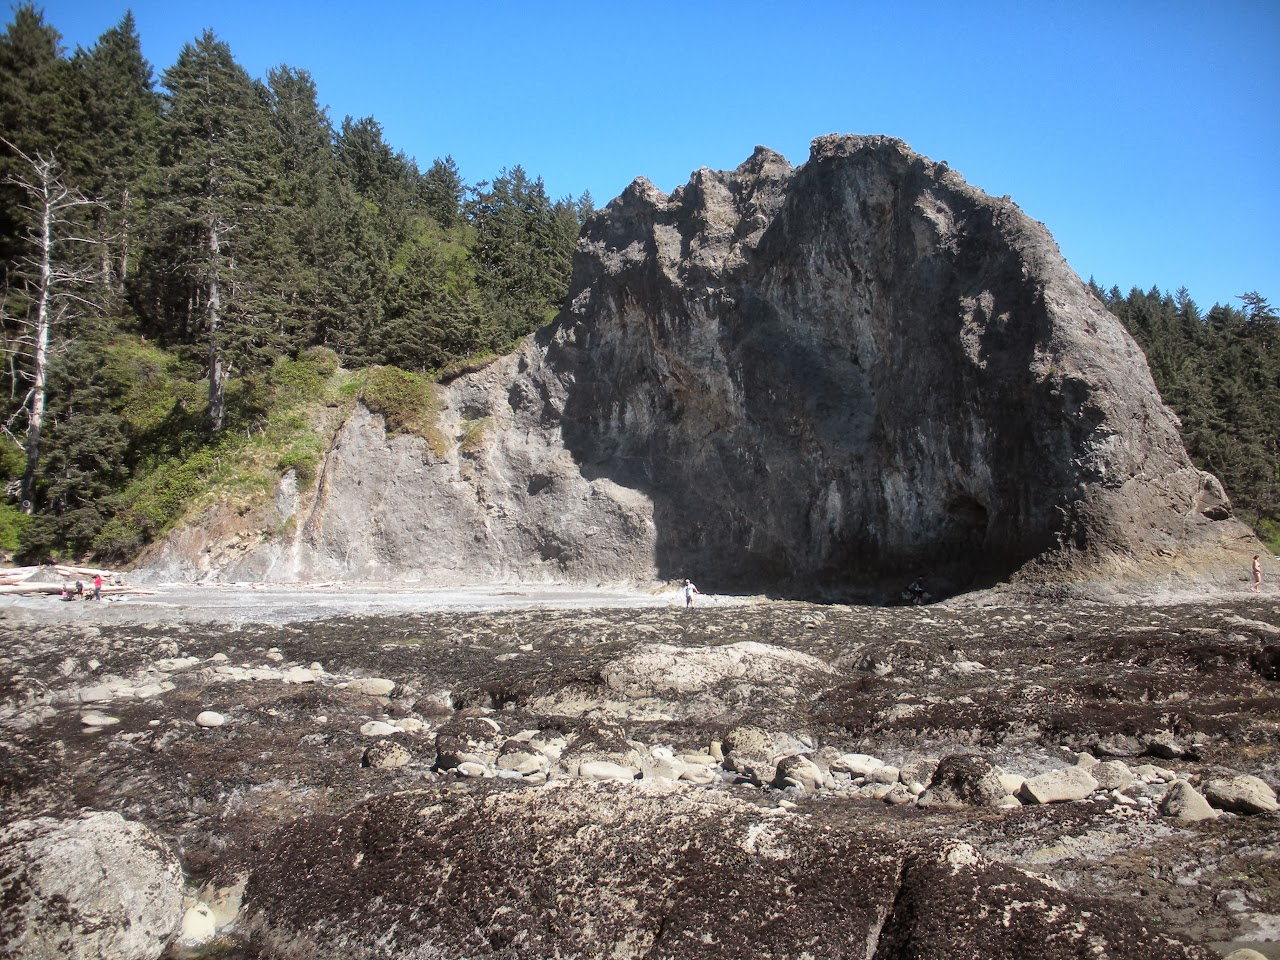 Rialto Beach May 2013 - DSCN0208.JPG